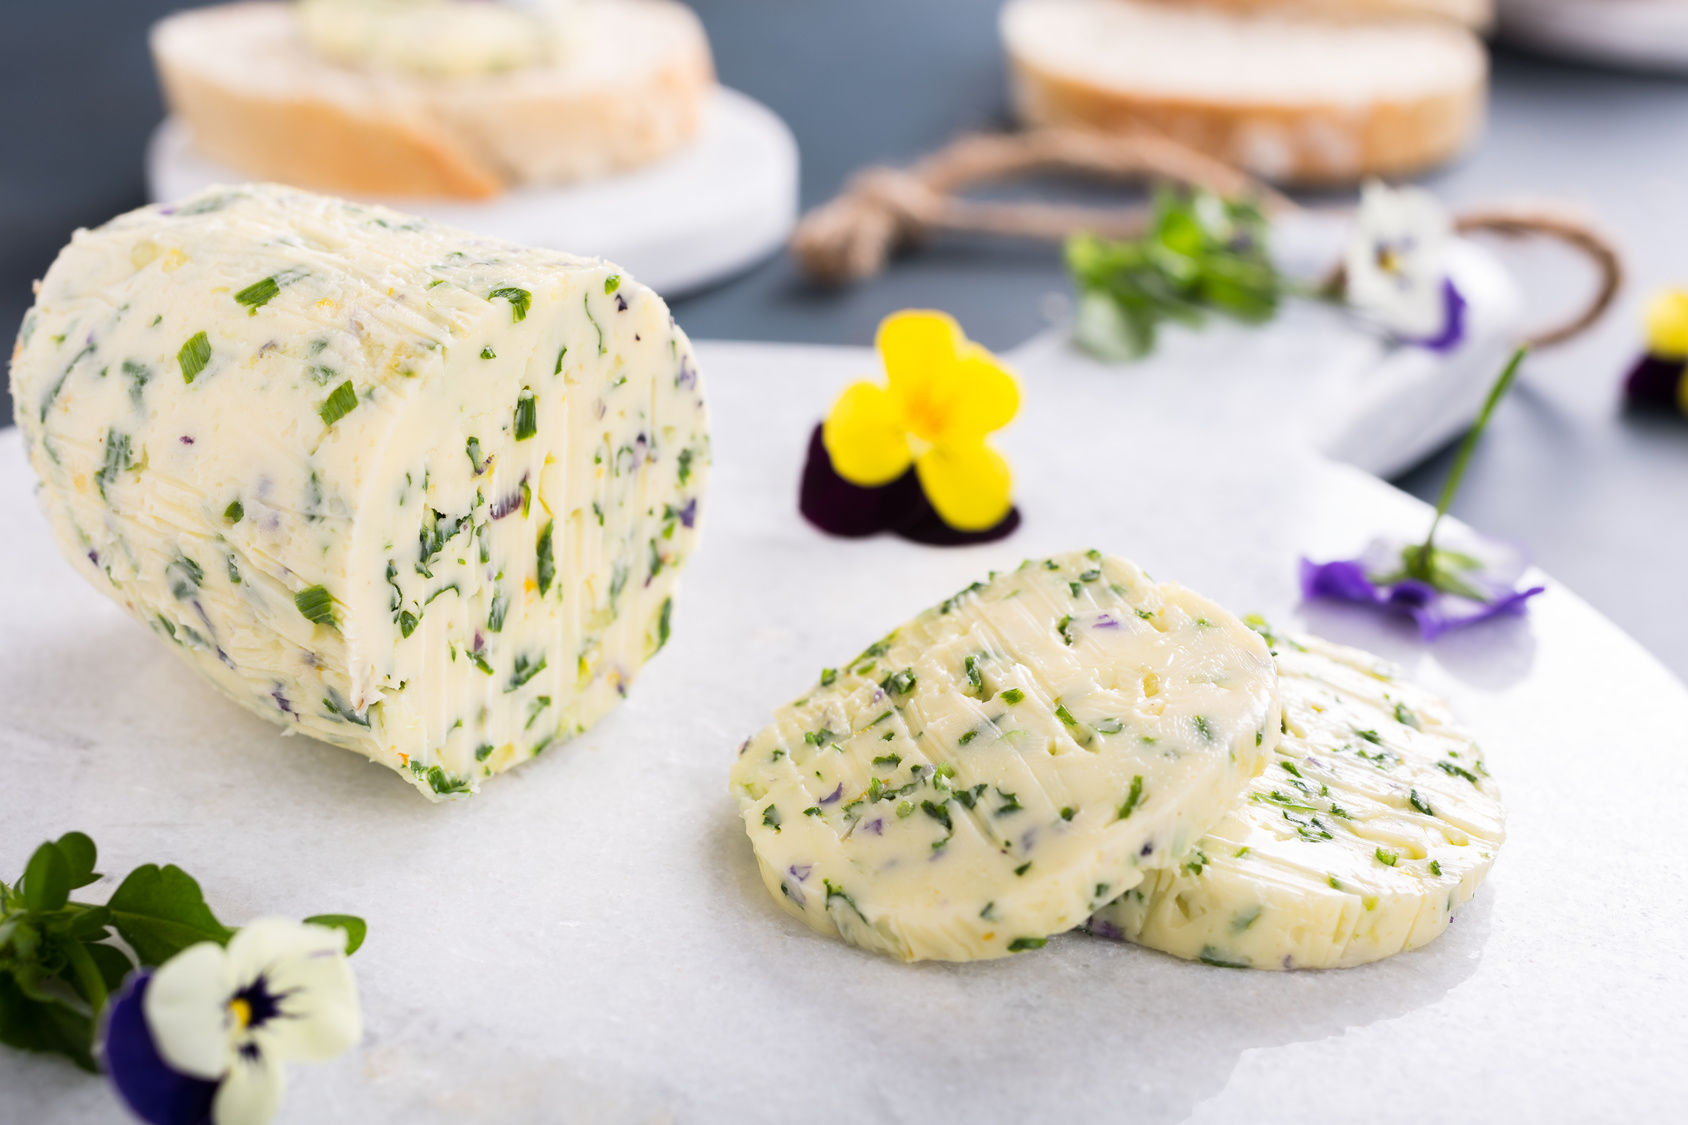 Herb butter with edible flowers on marble cutting board, healthy food.